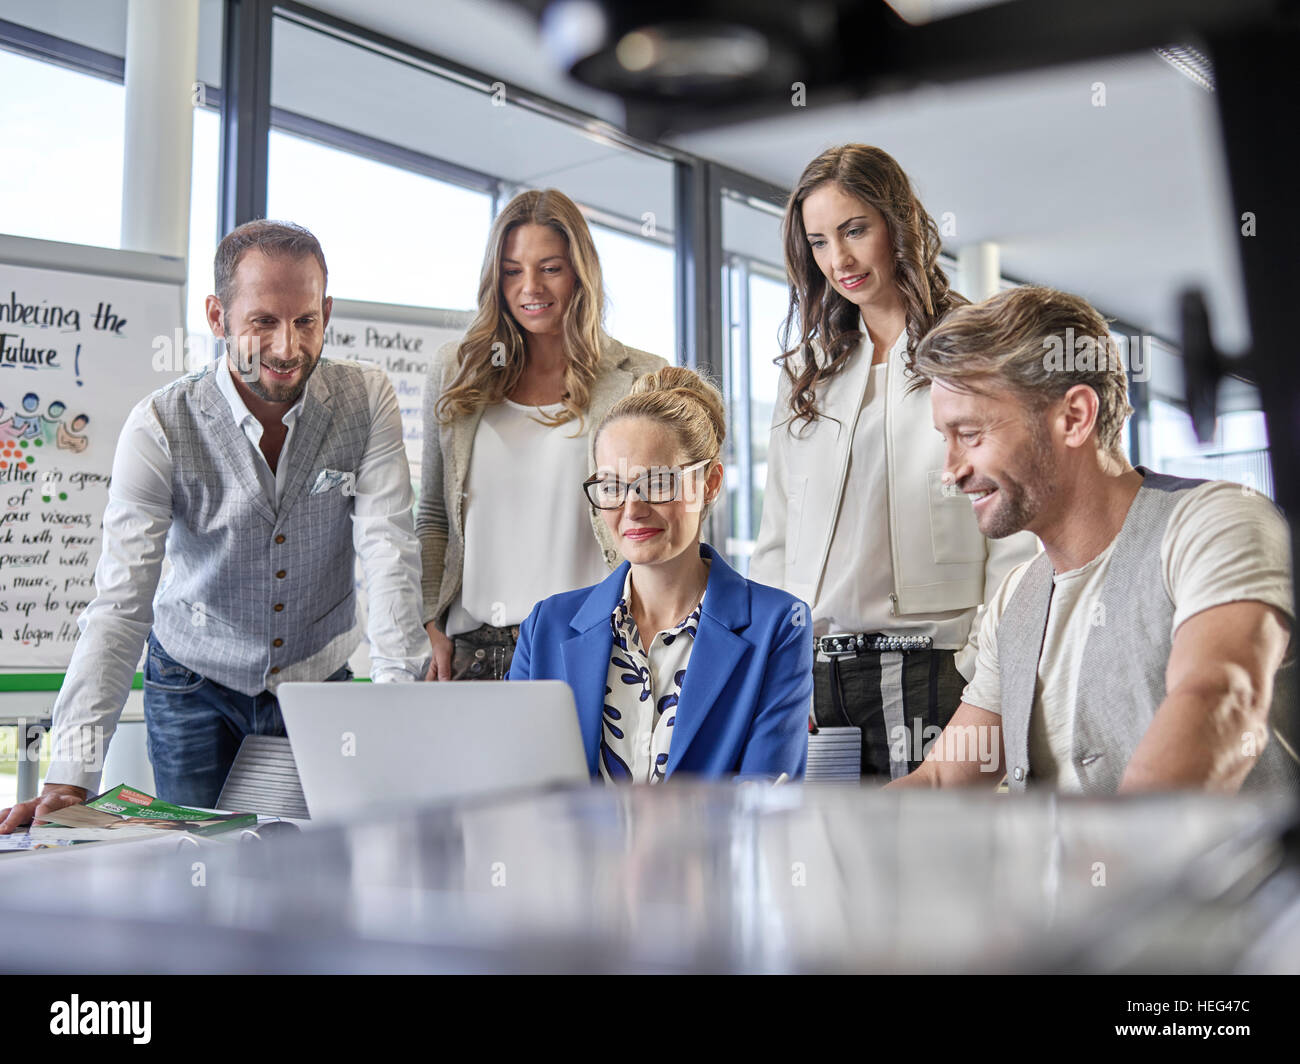 Creative teamwork, presentation, project, workshop, training, seminar for executives, adult education, Austria - Stock Image